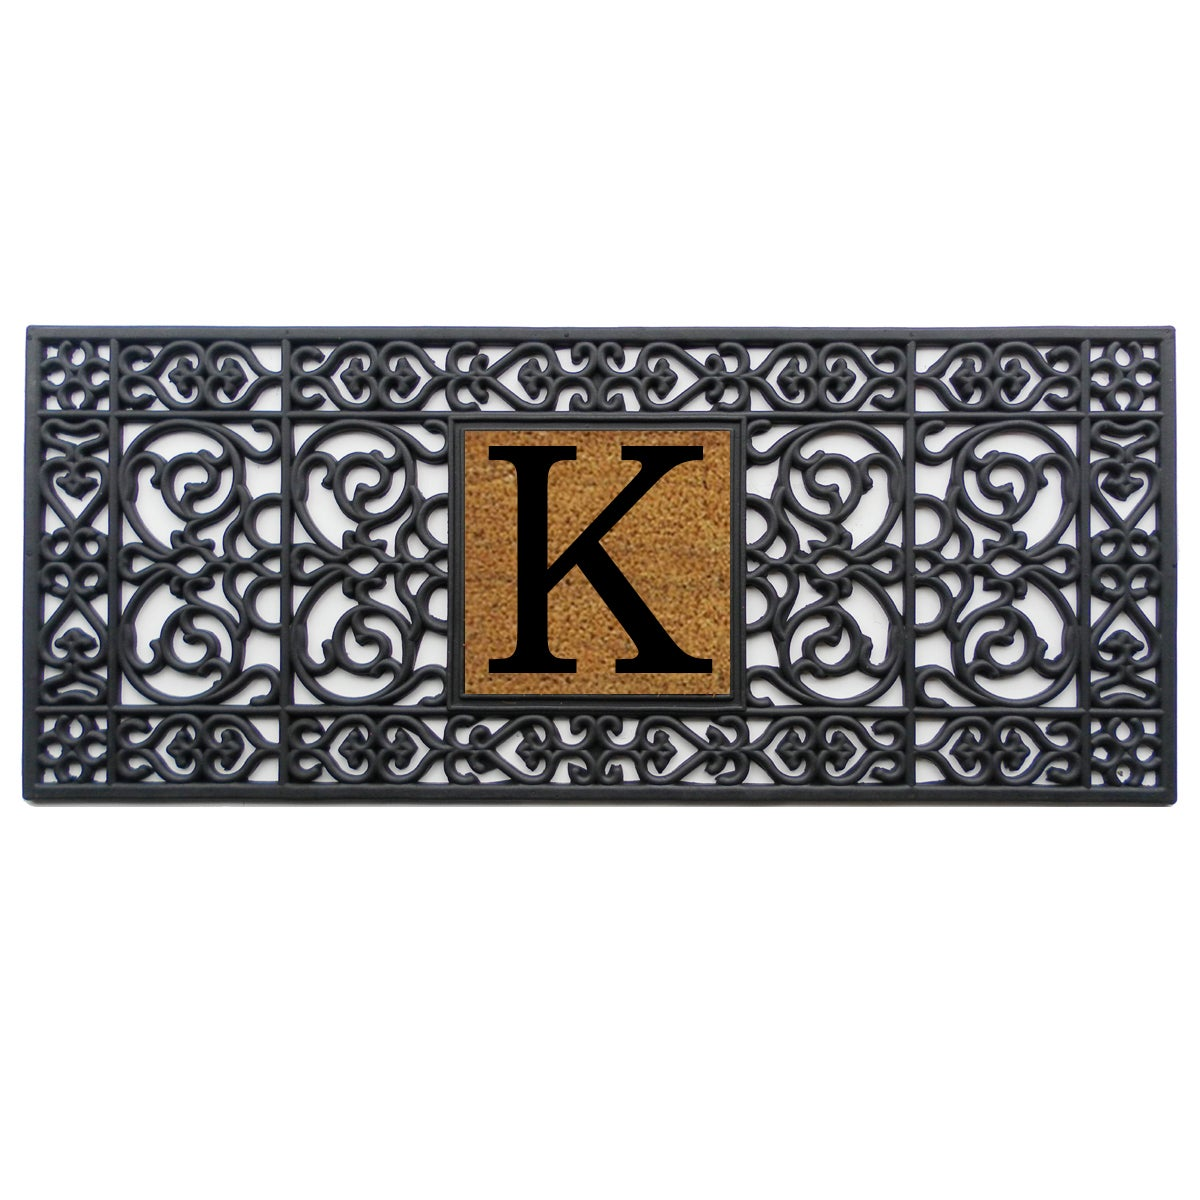 Black Rubber Monogrammed Doormat (1'5 x 3'5) - Free Shipping On ...